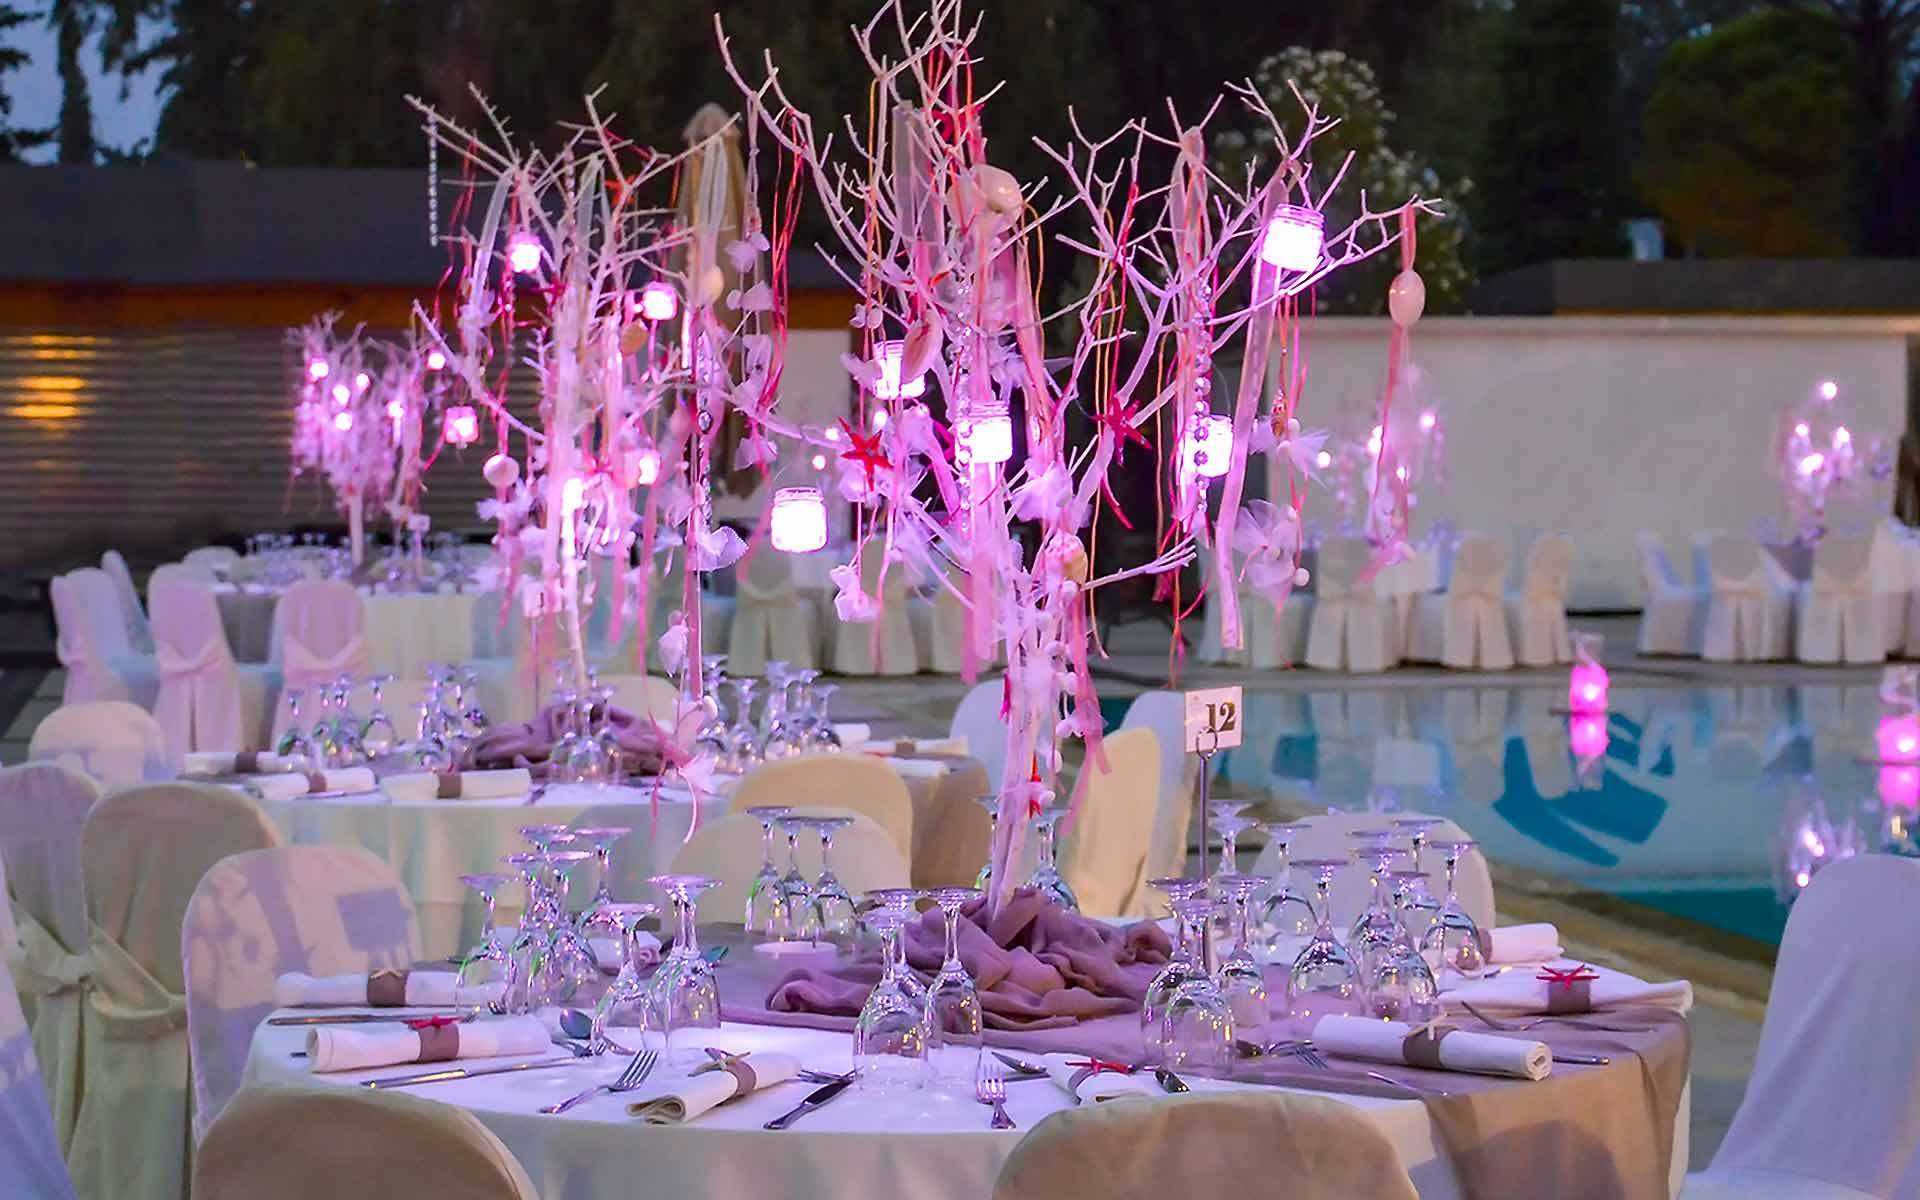 Corals-In-Trees-In-Purple-Lighting-As-A-Centerpiece-In-A-Beach-Wedding